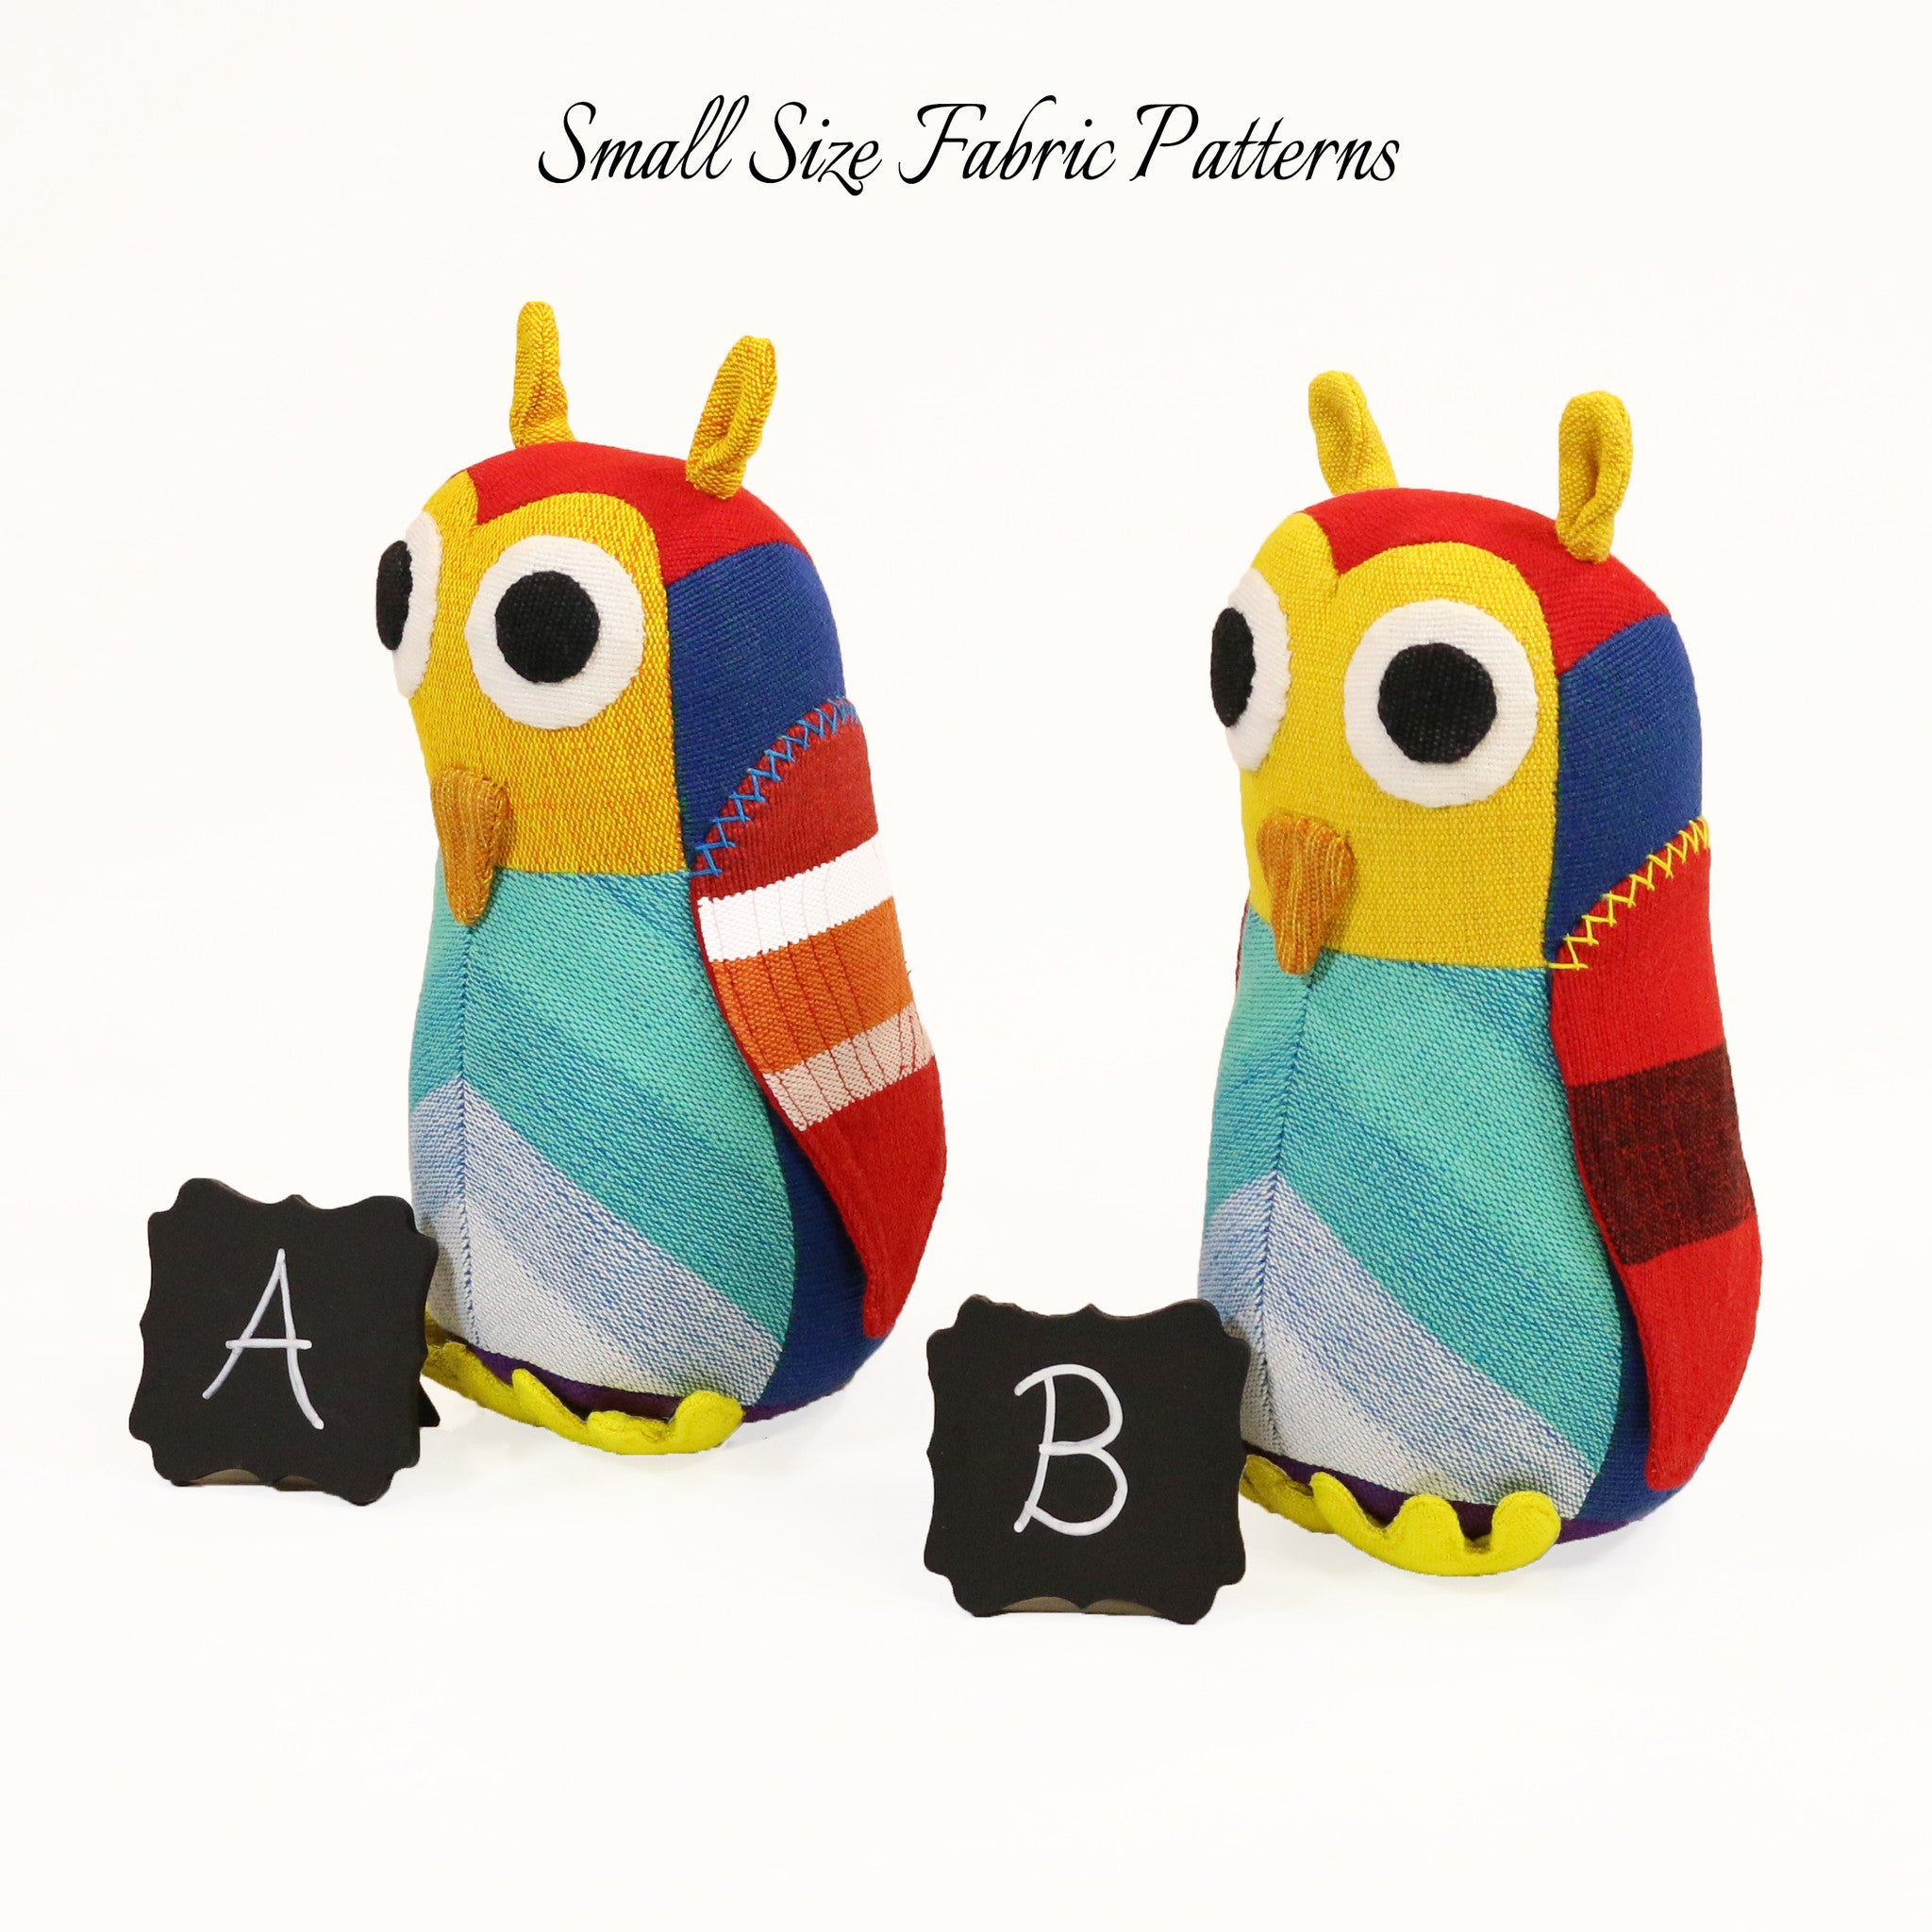 Huey, the Owl – all small size fabric patterns shown